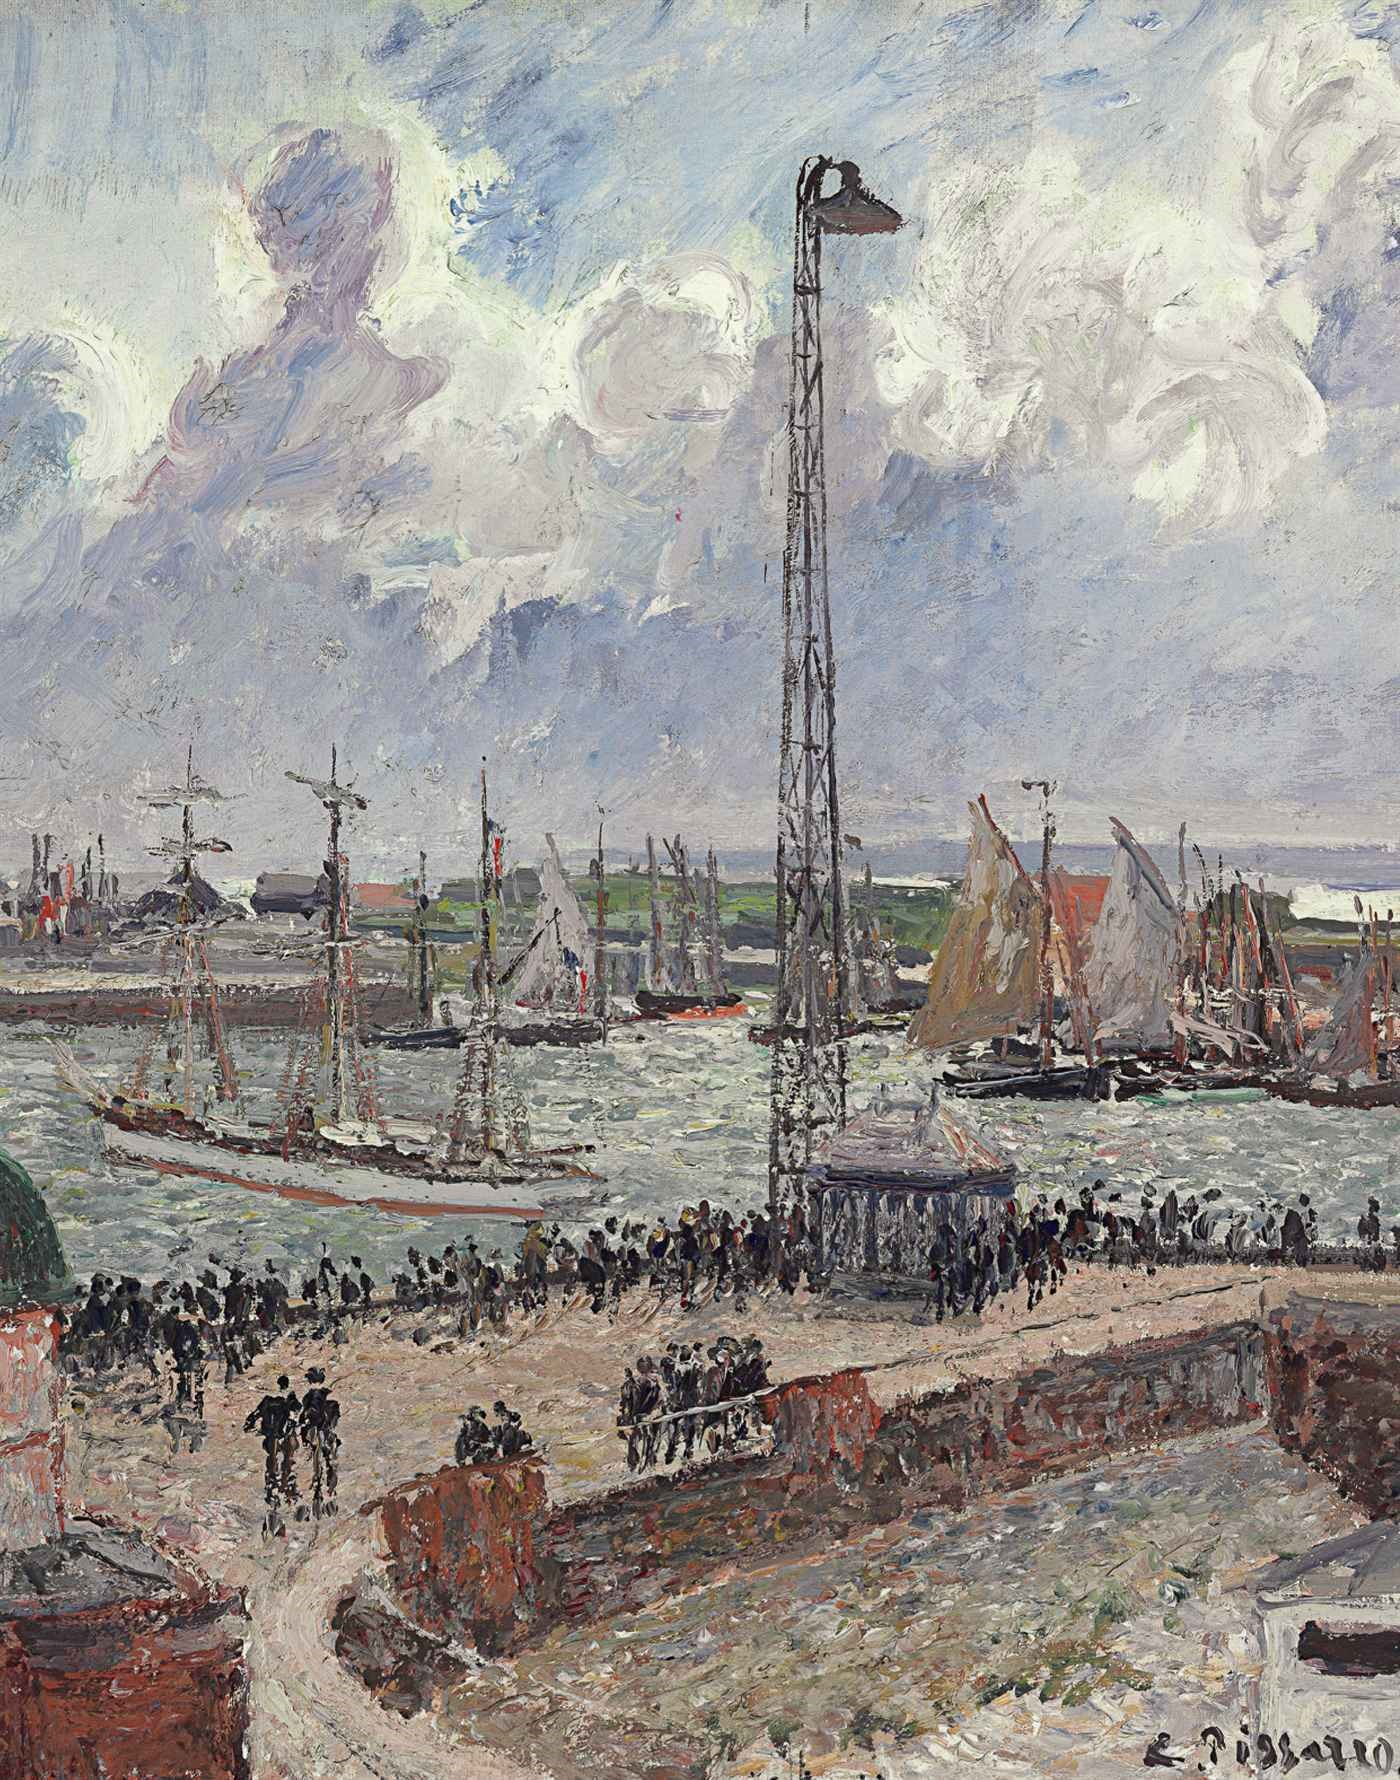 Impressionist & Modern Day Sal auction at Christies